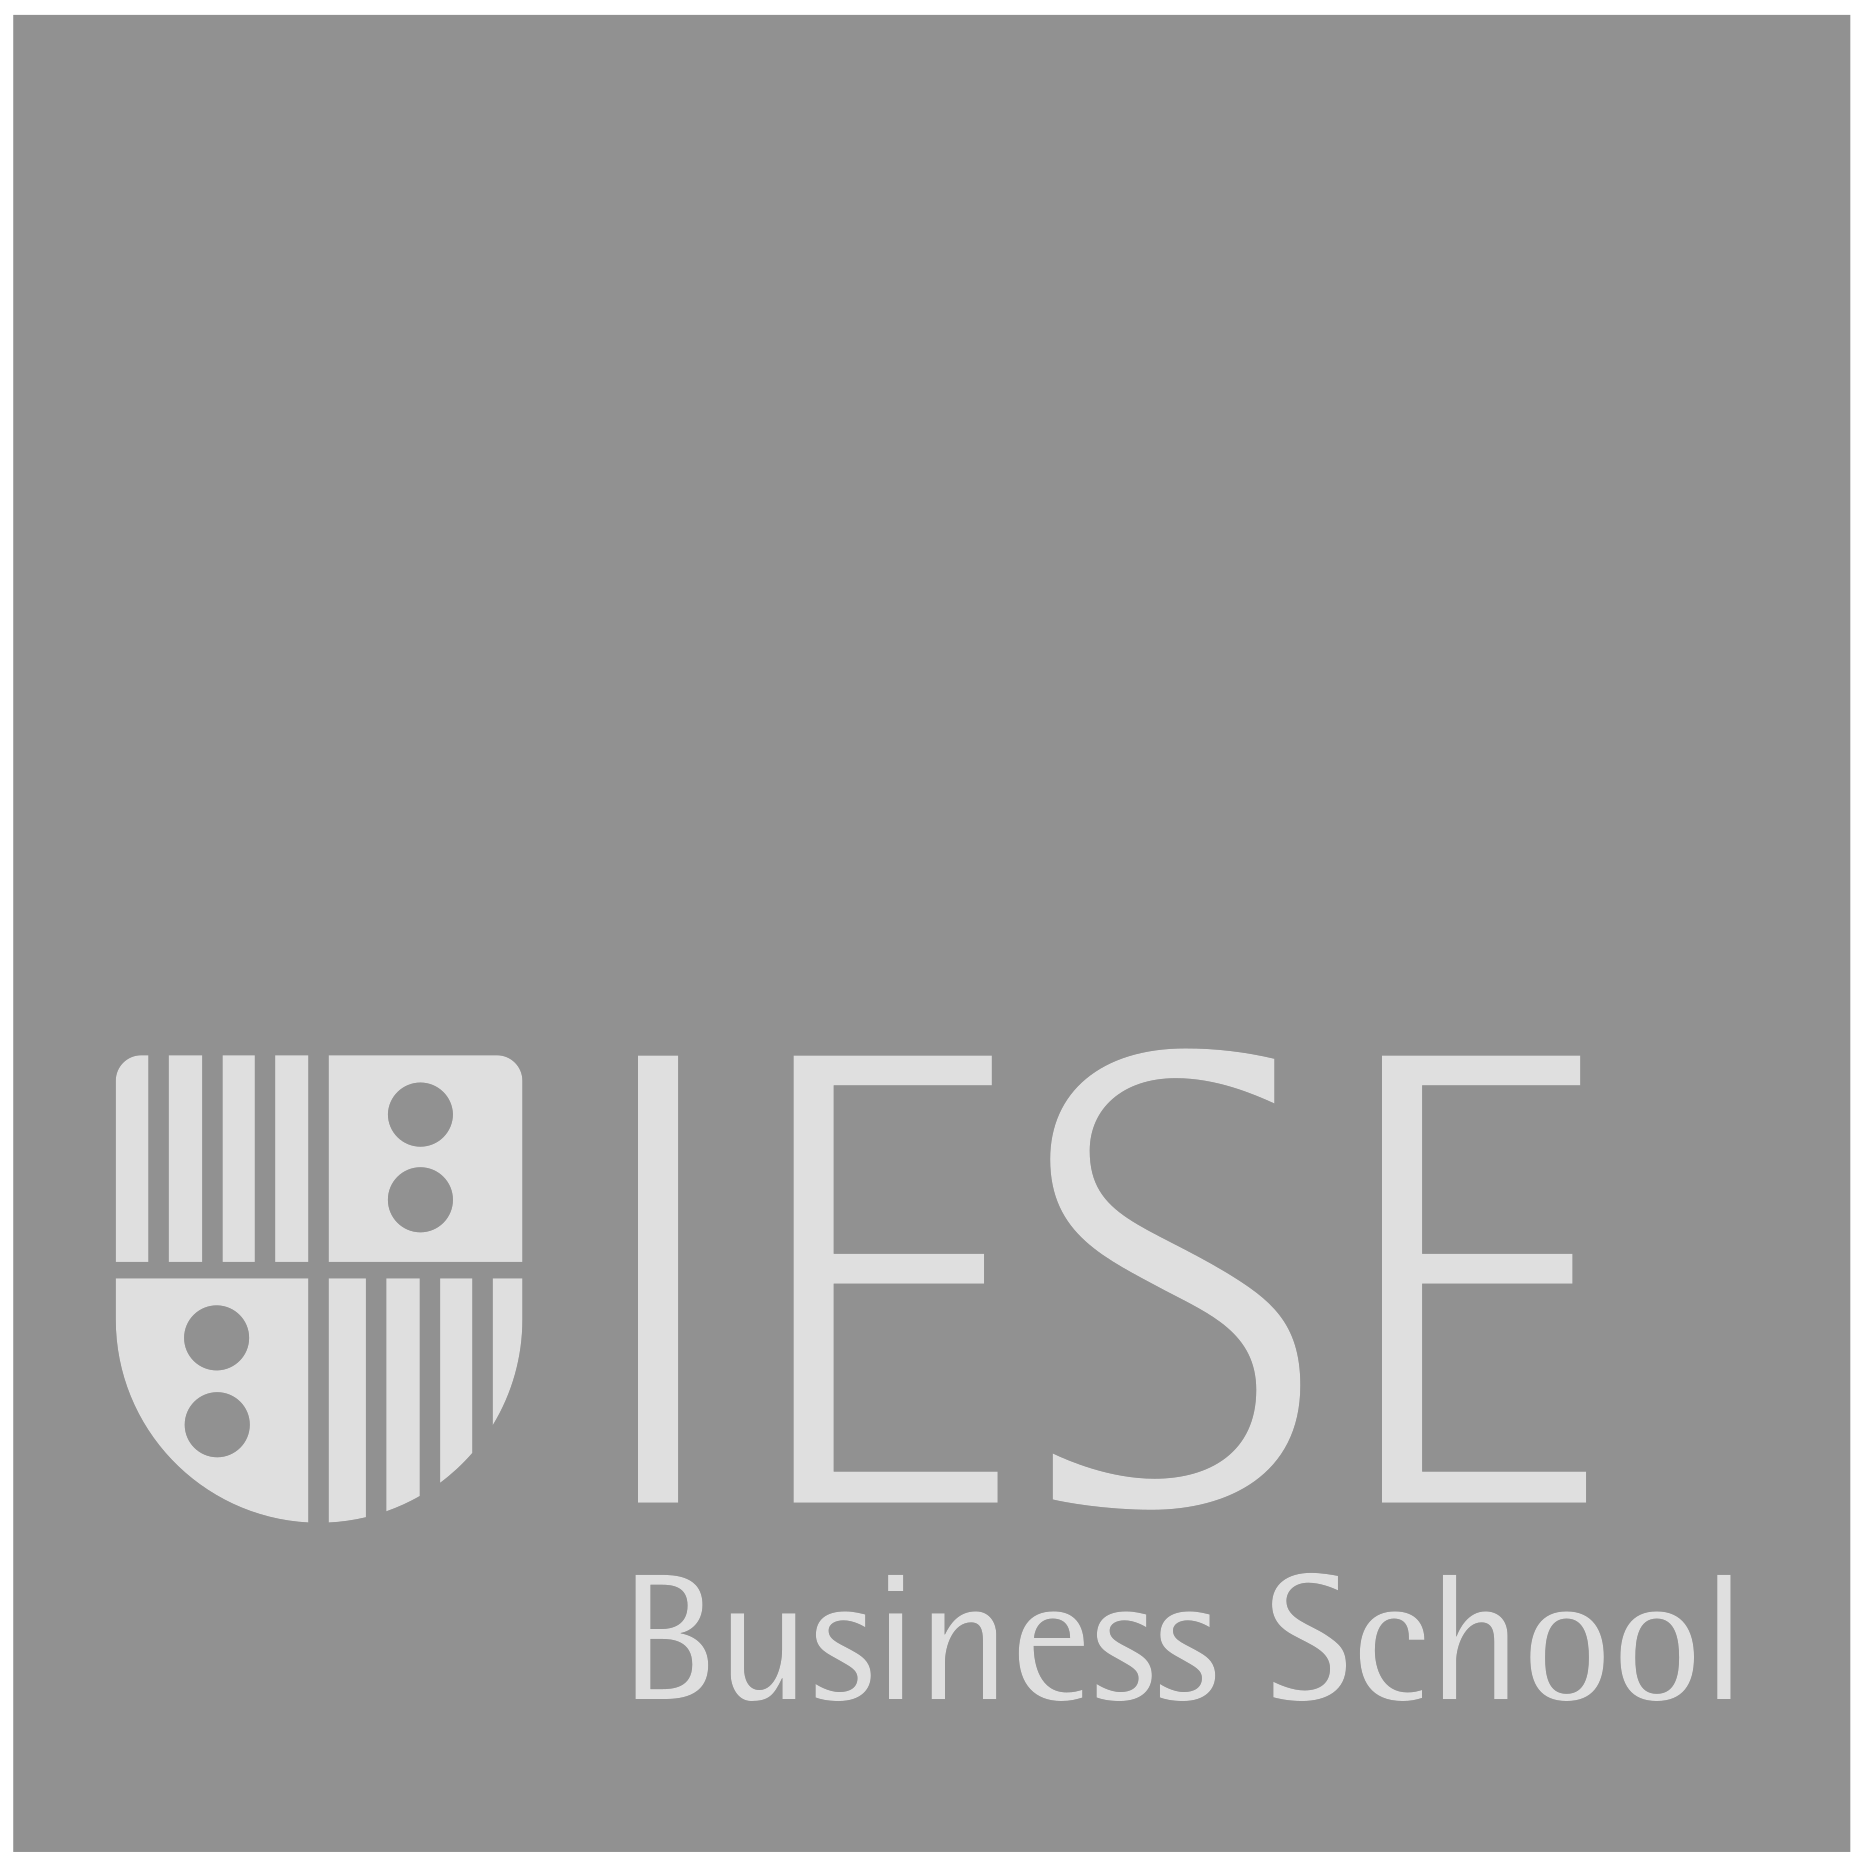 iese-business-school-logo-png-transparent.png